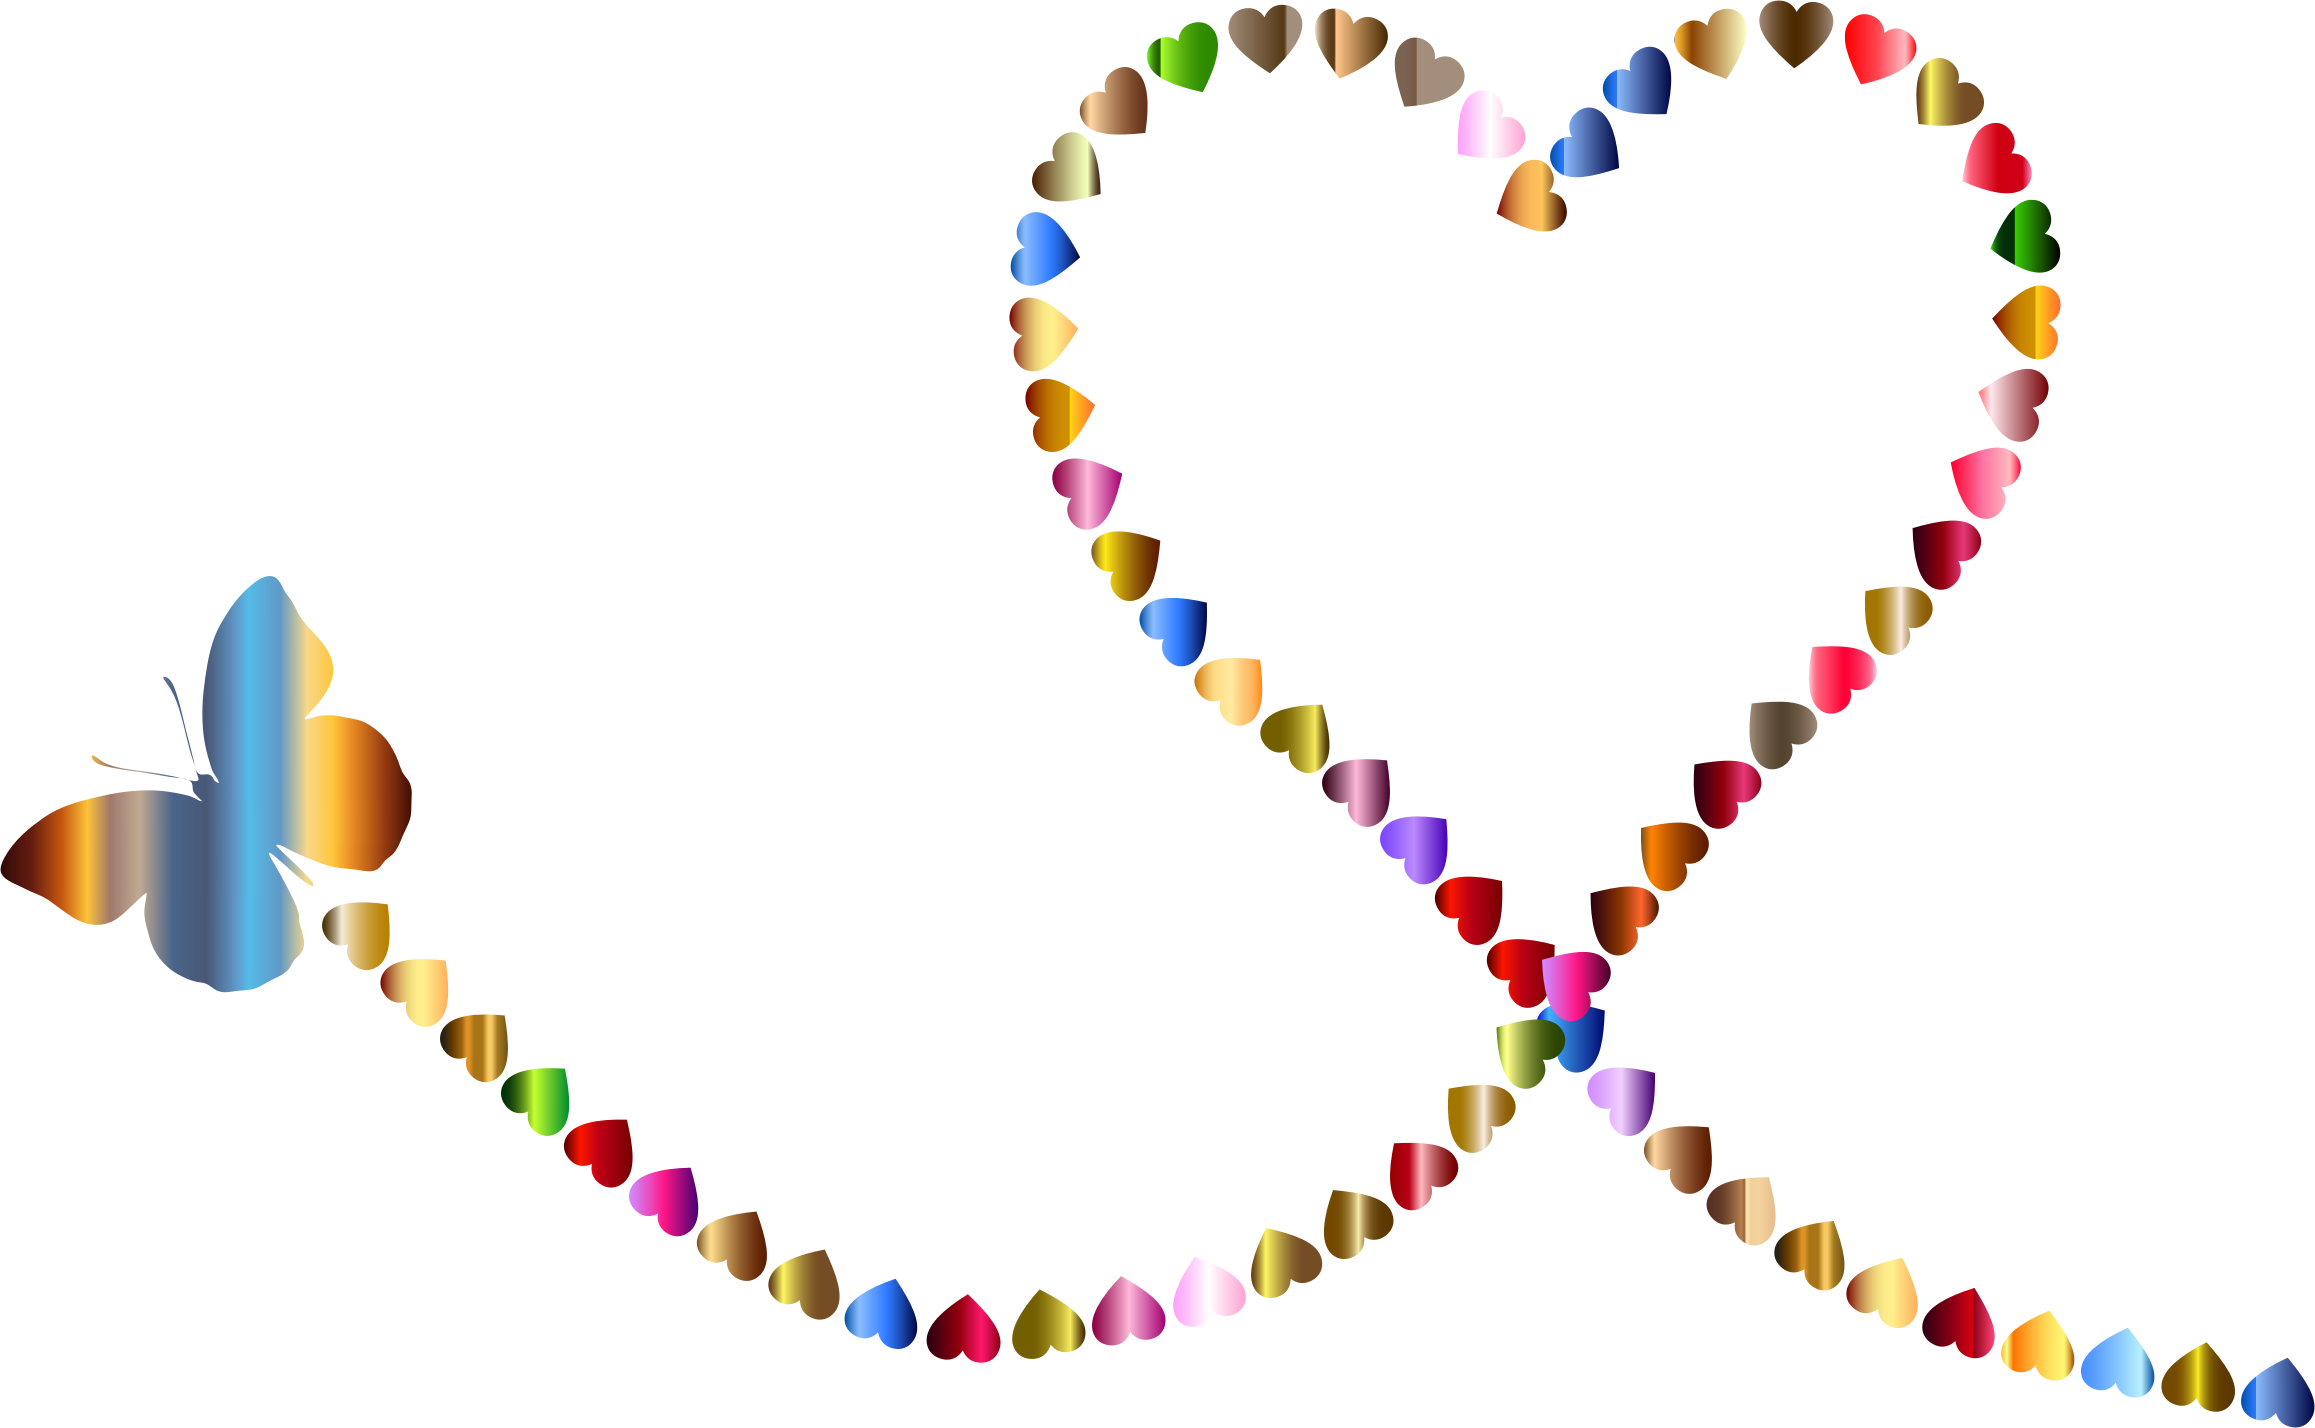 Butterfly hearts icons png. Trail clipart nature trail